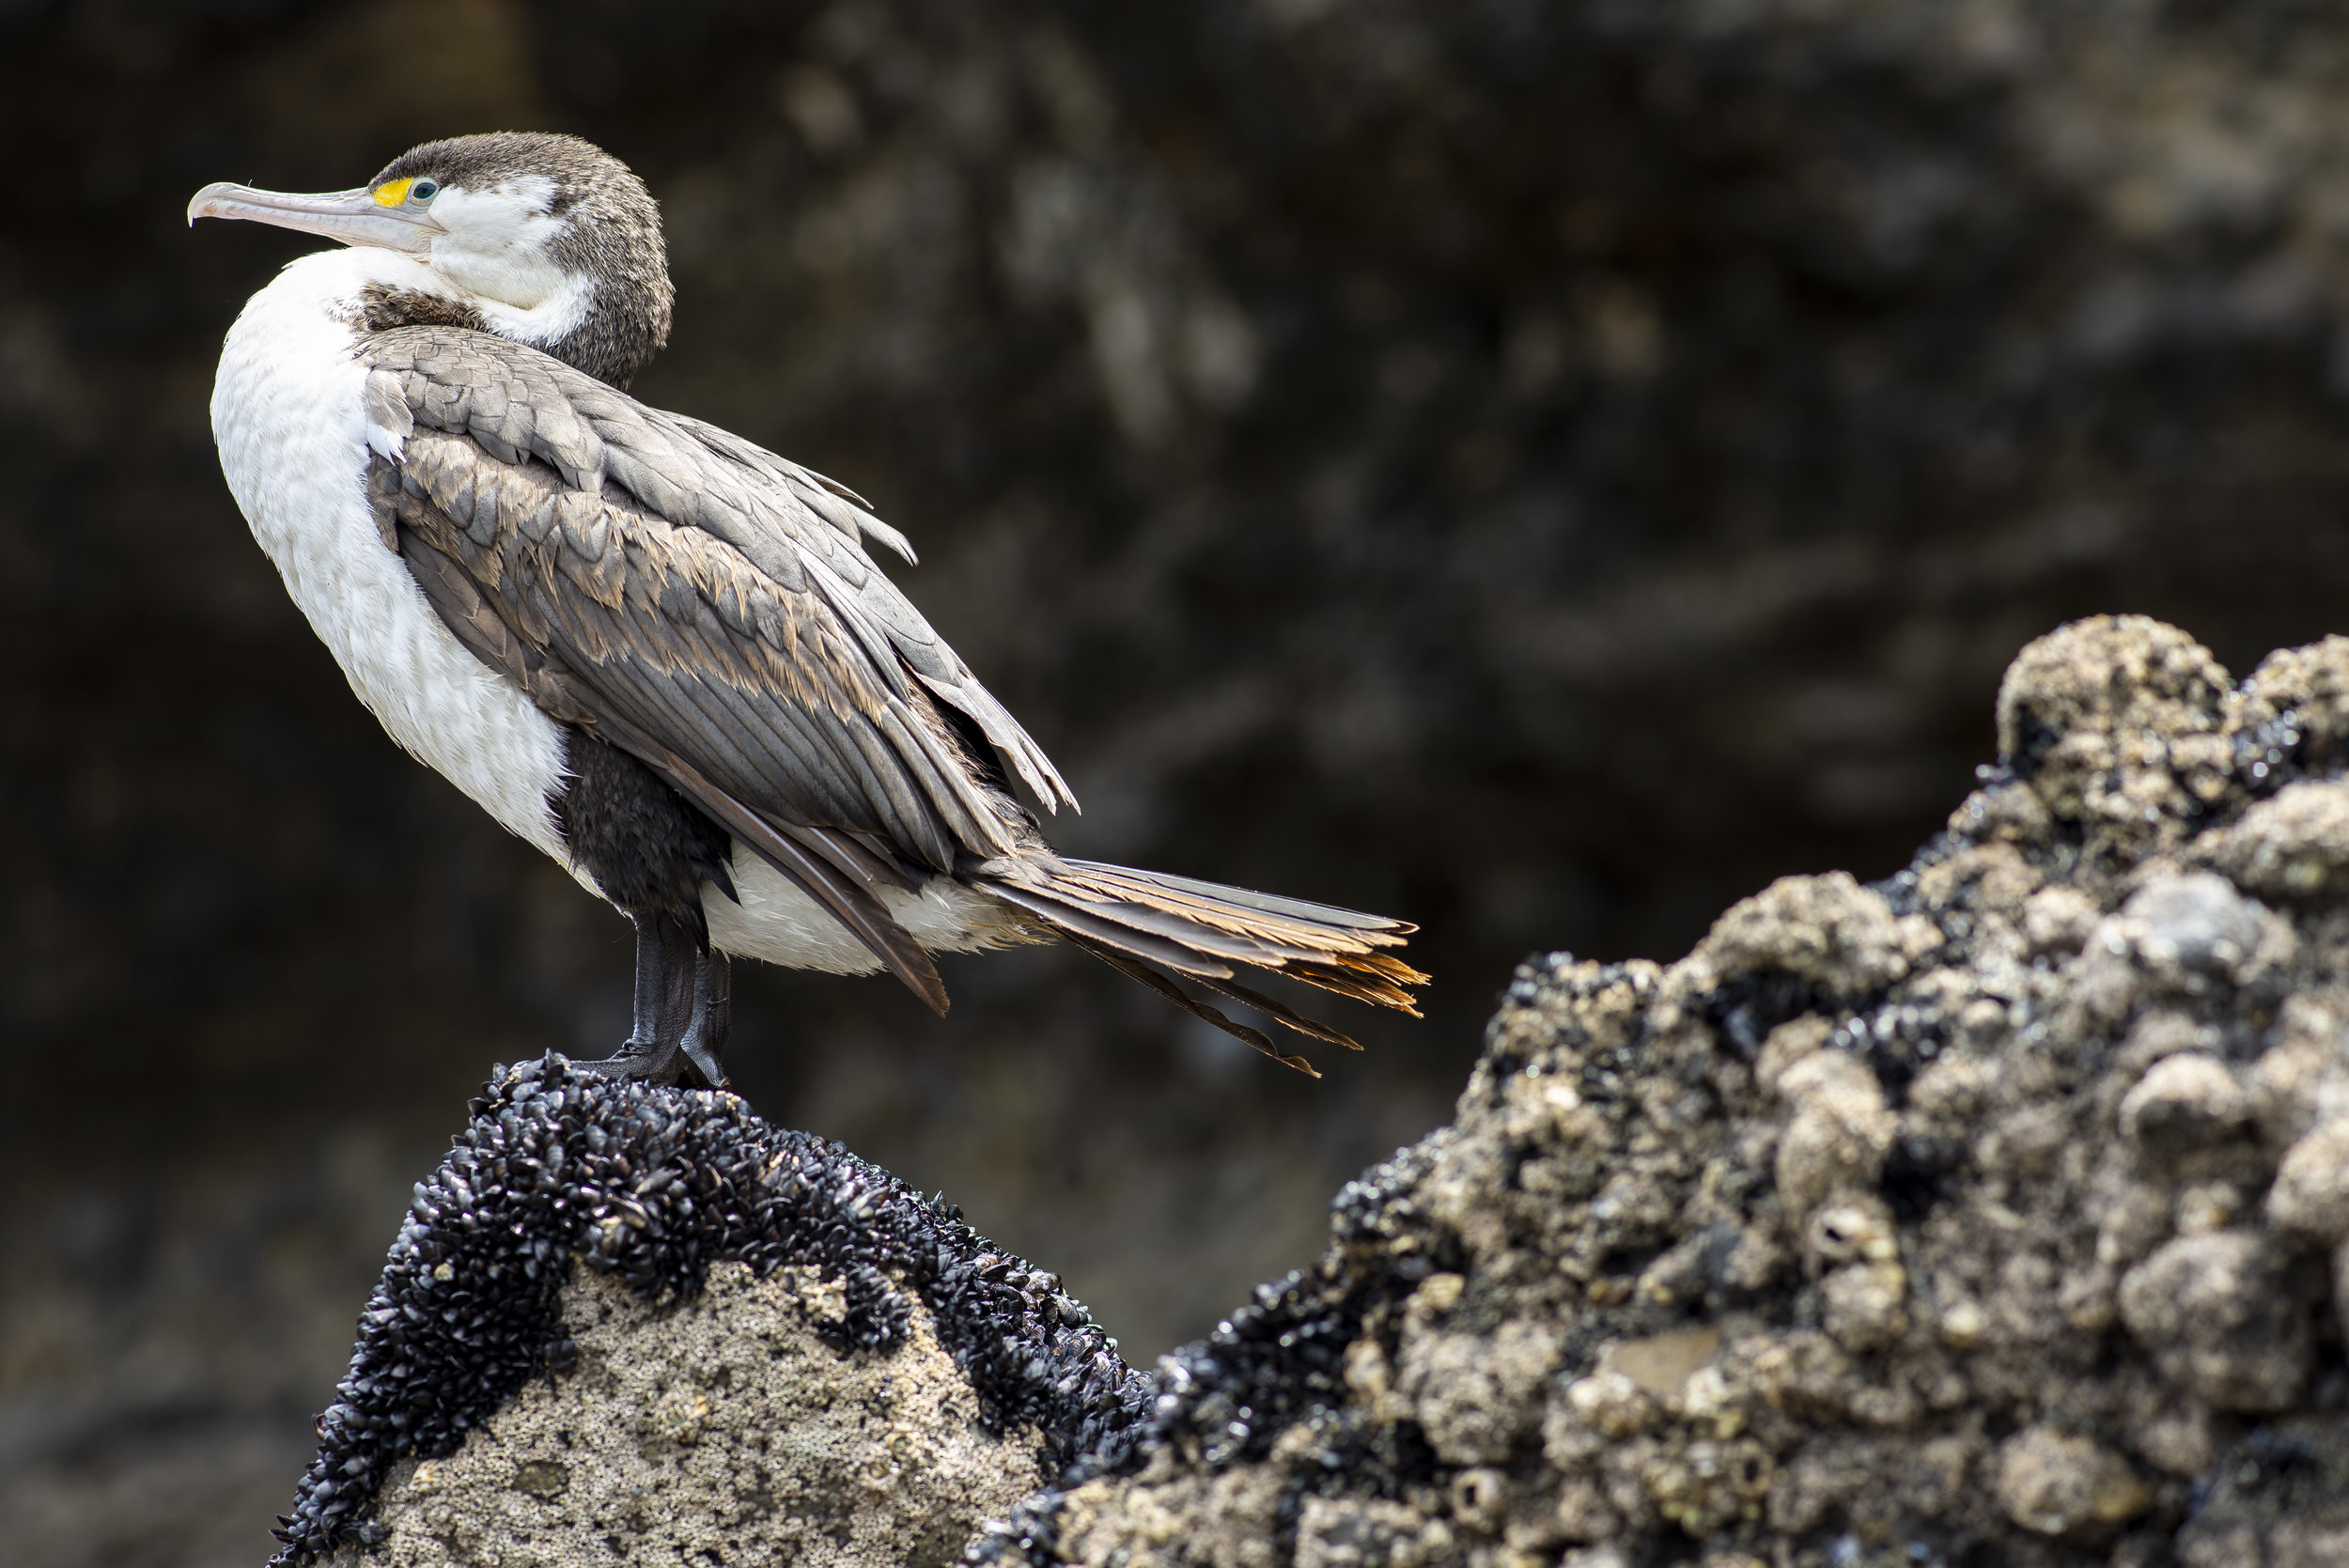 A Kāruhiruhi or pied shag rests on a barnacle covered rock during low tide at Piha Beach in Auckland, New Zealand. (Elise Marie Photography)